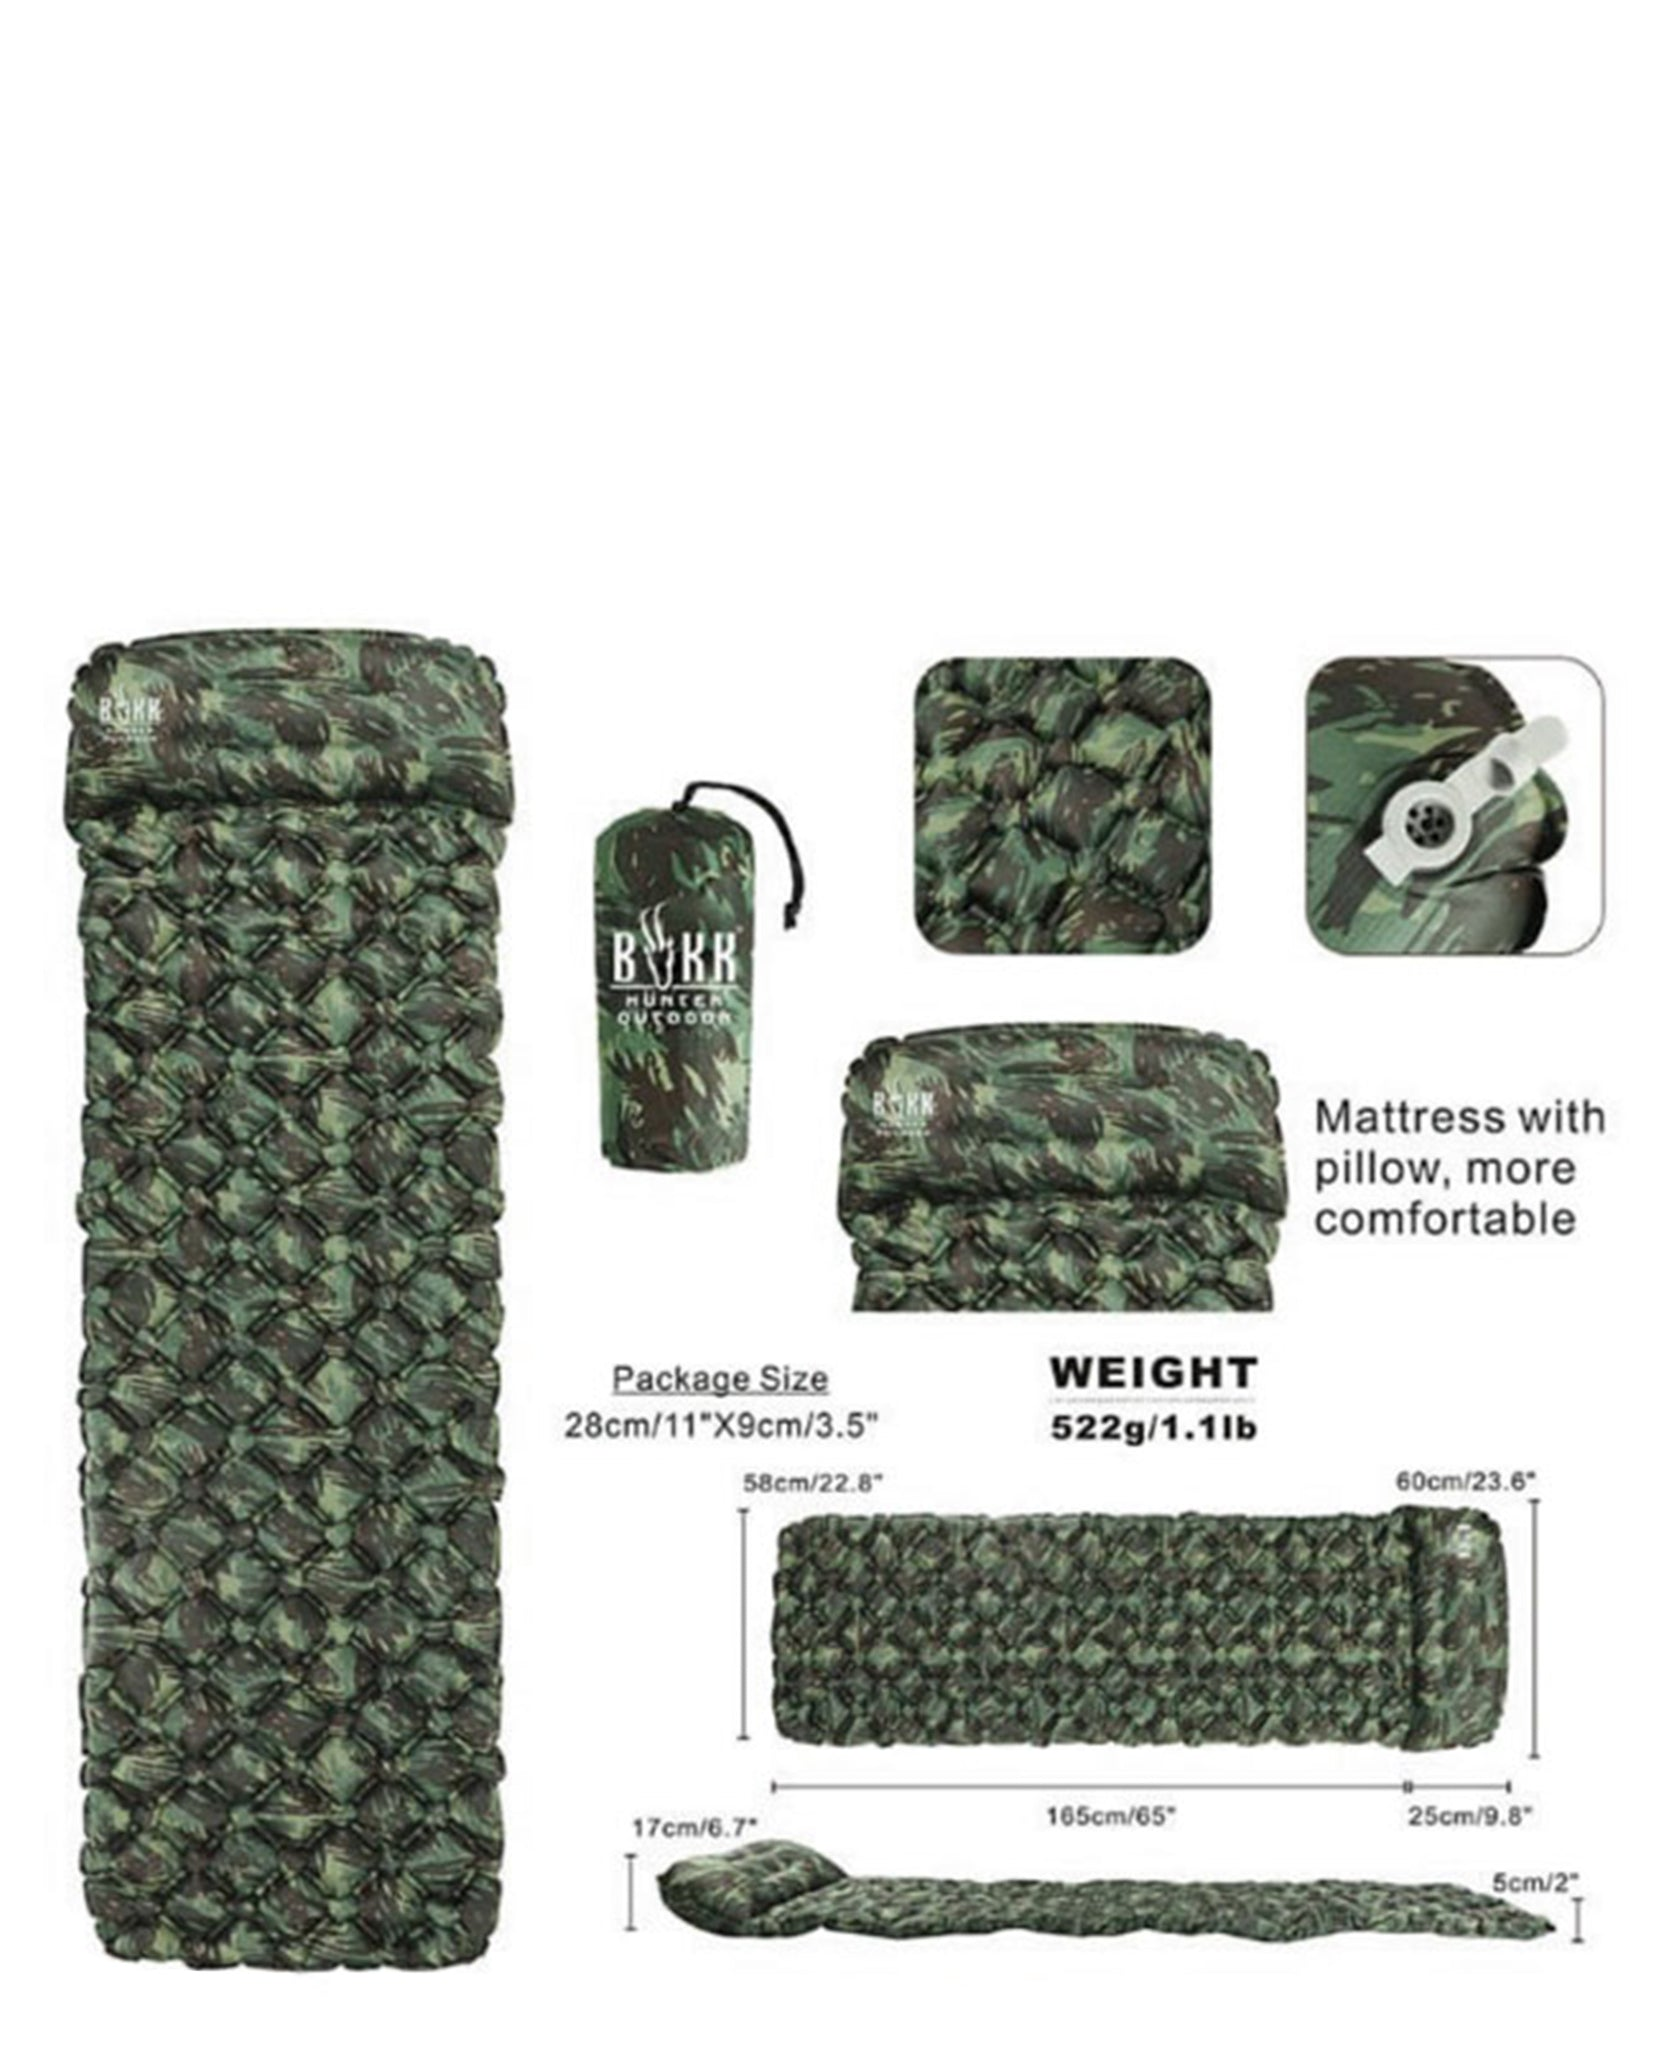 Camo Sleeping Pad With Pillow - Green